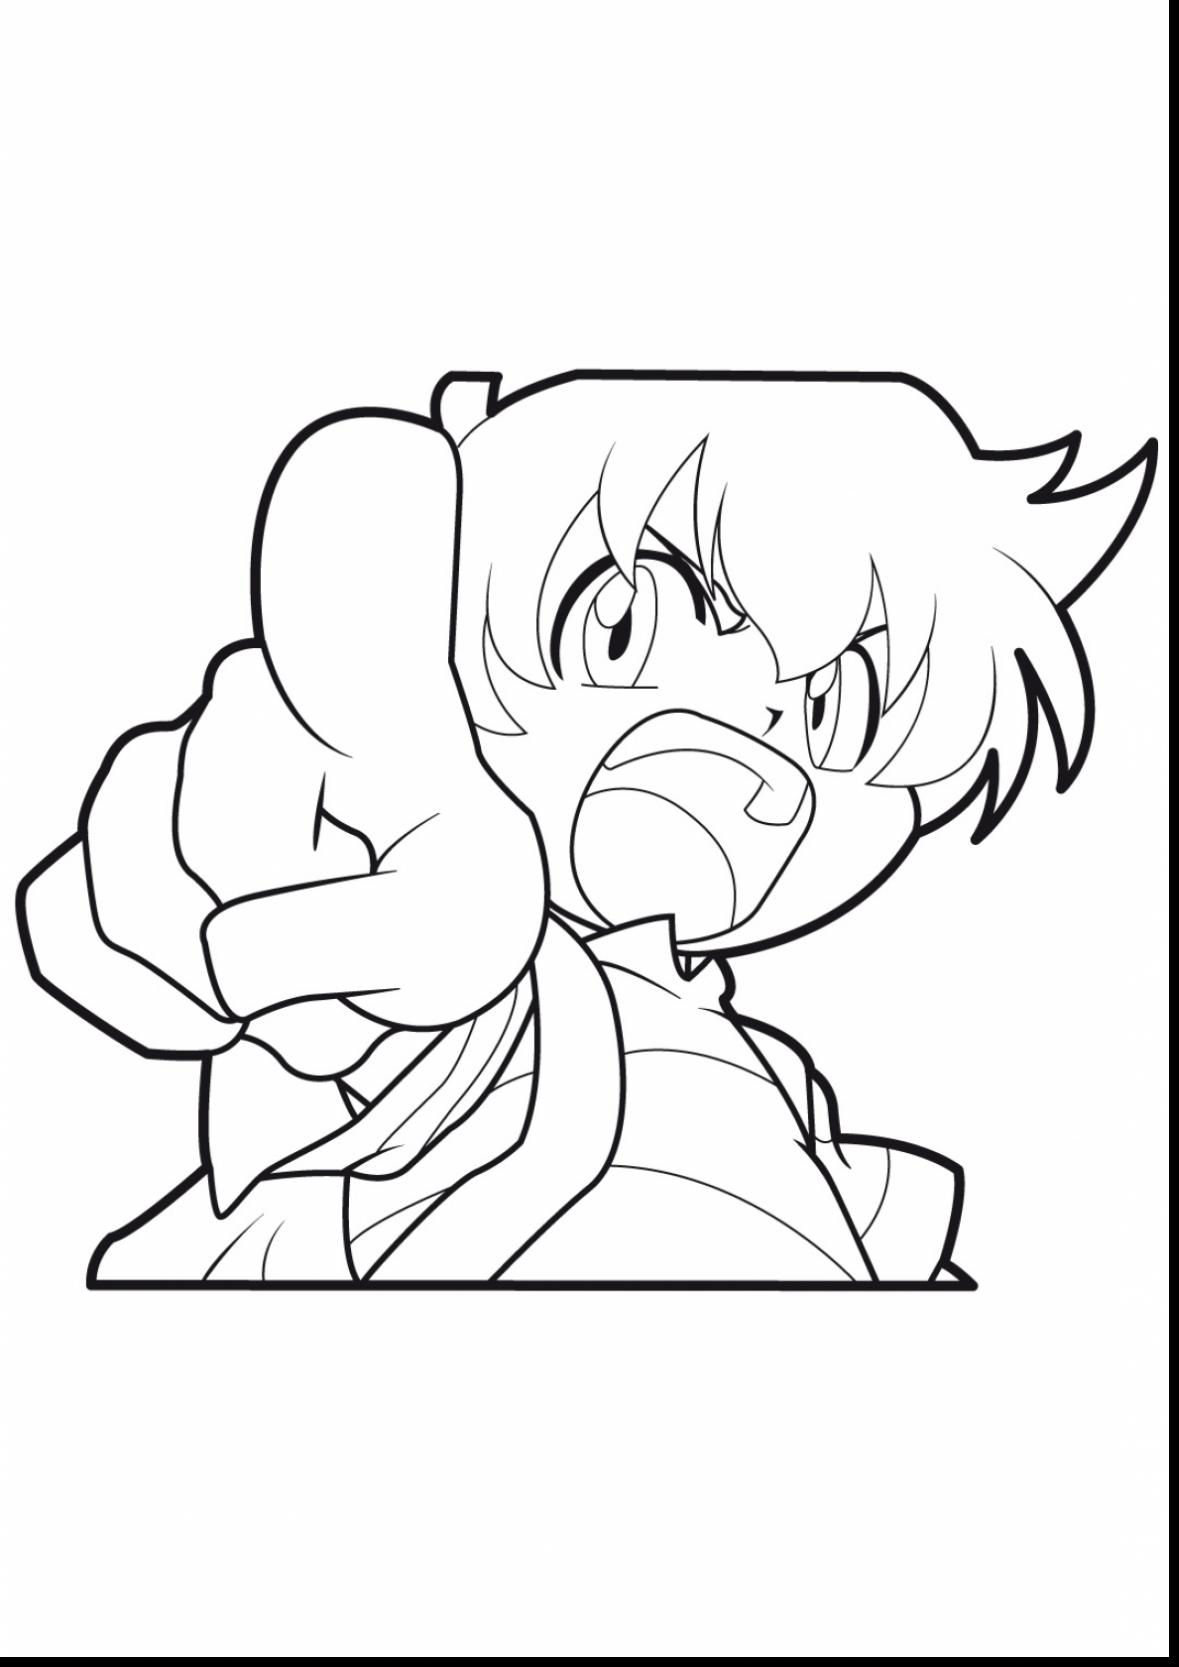 1179x1667 Better Beyblade Ginga Coloring Pages Impressive Ideas Kids Zeus